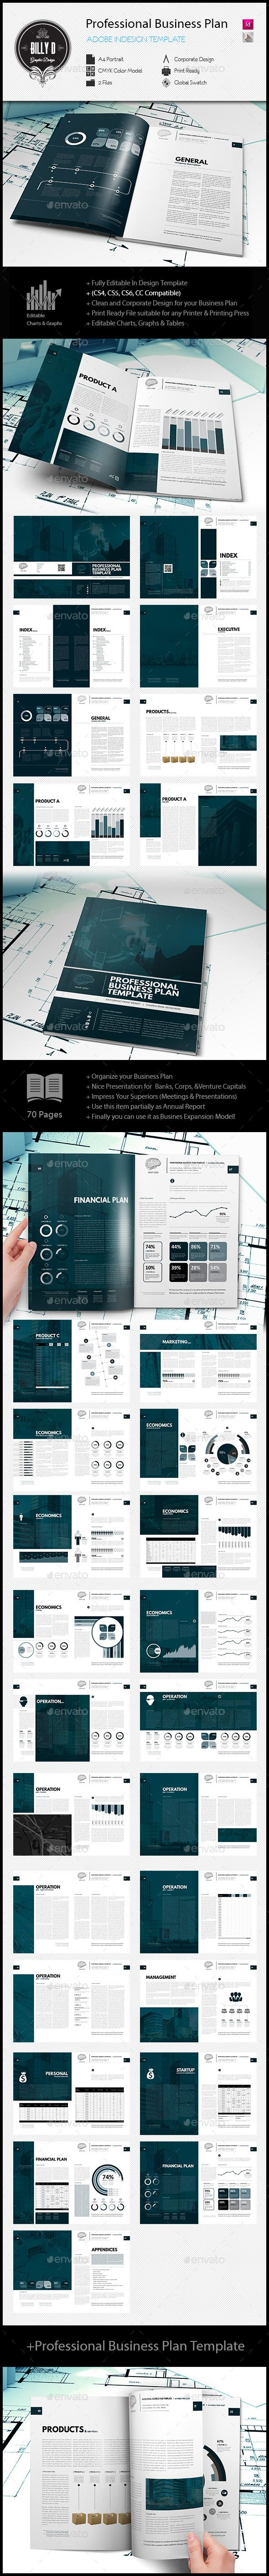 Professional Business Plan Template - Miscellaneous Print Templates